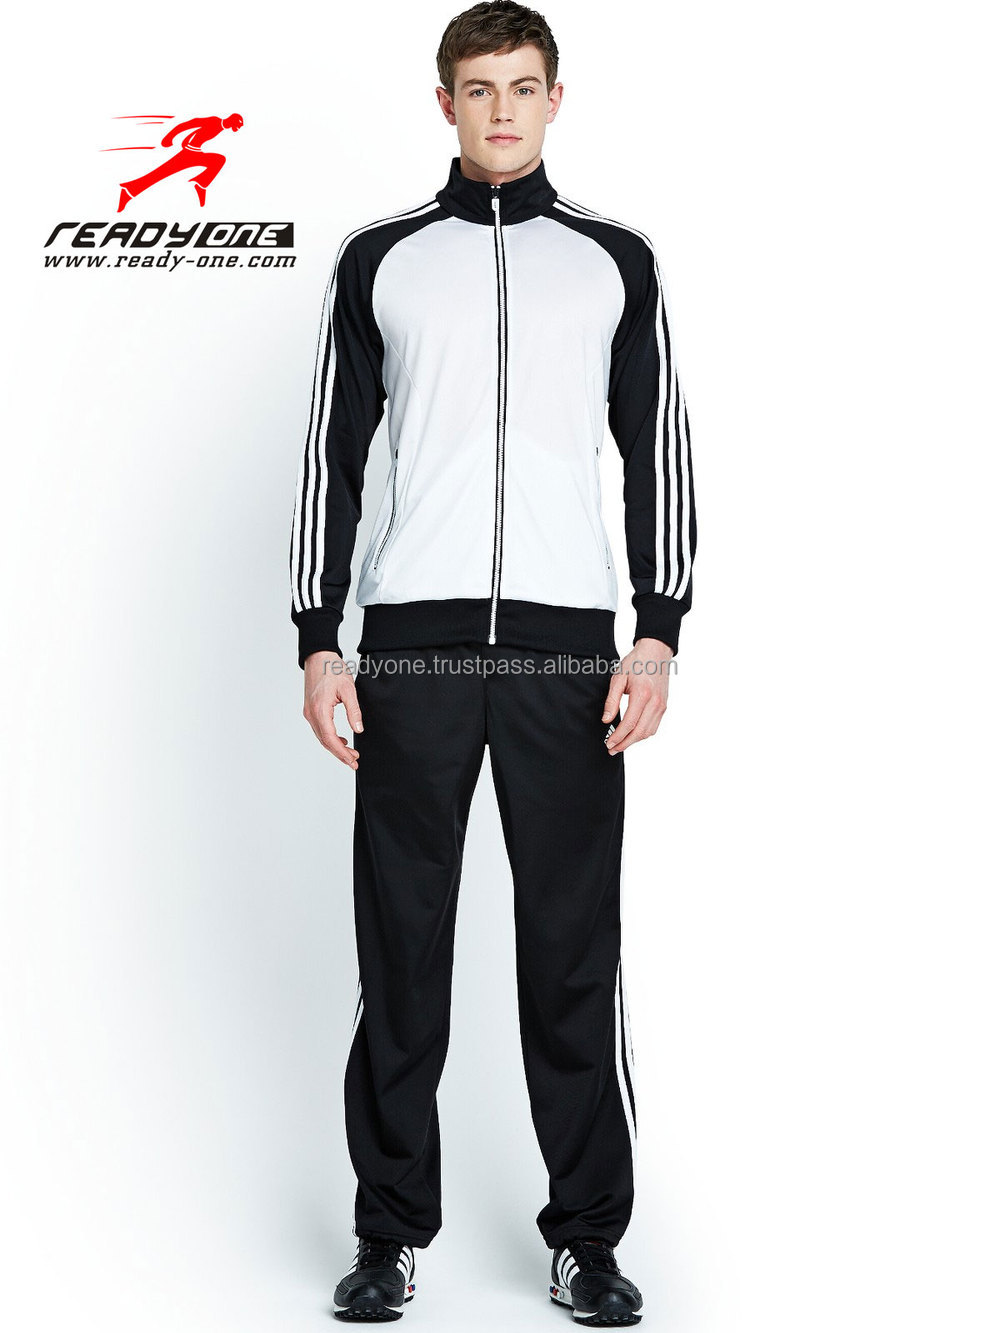 very cheap made in China customized jogging wear,college tracksuit,new style jogging suit